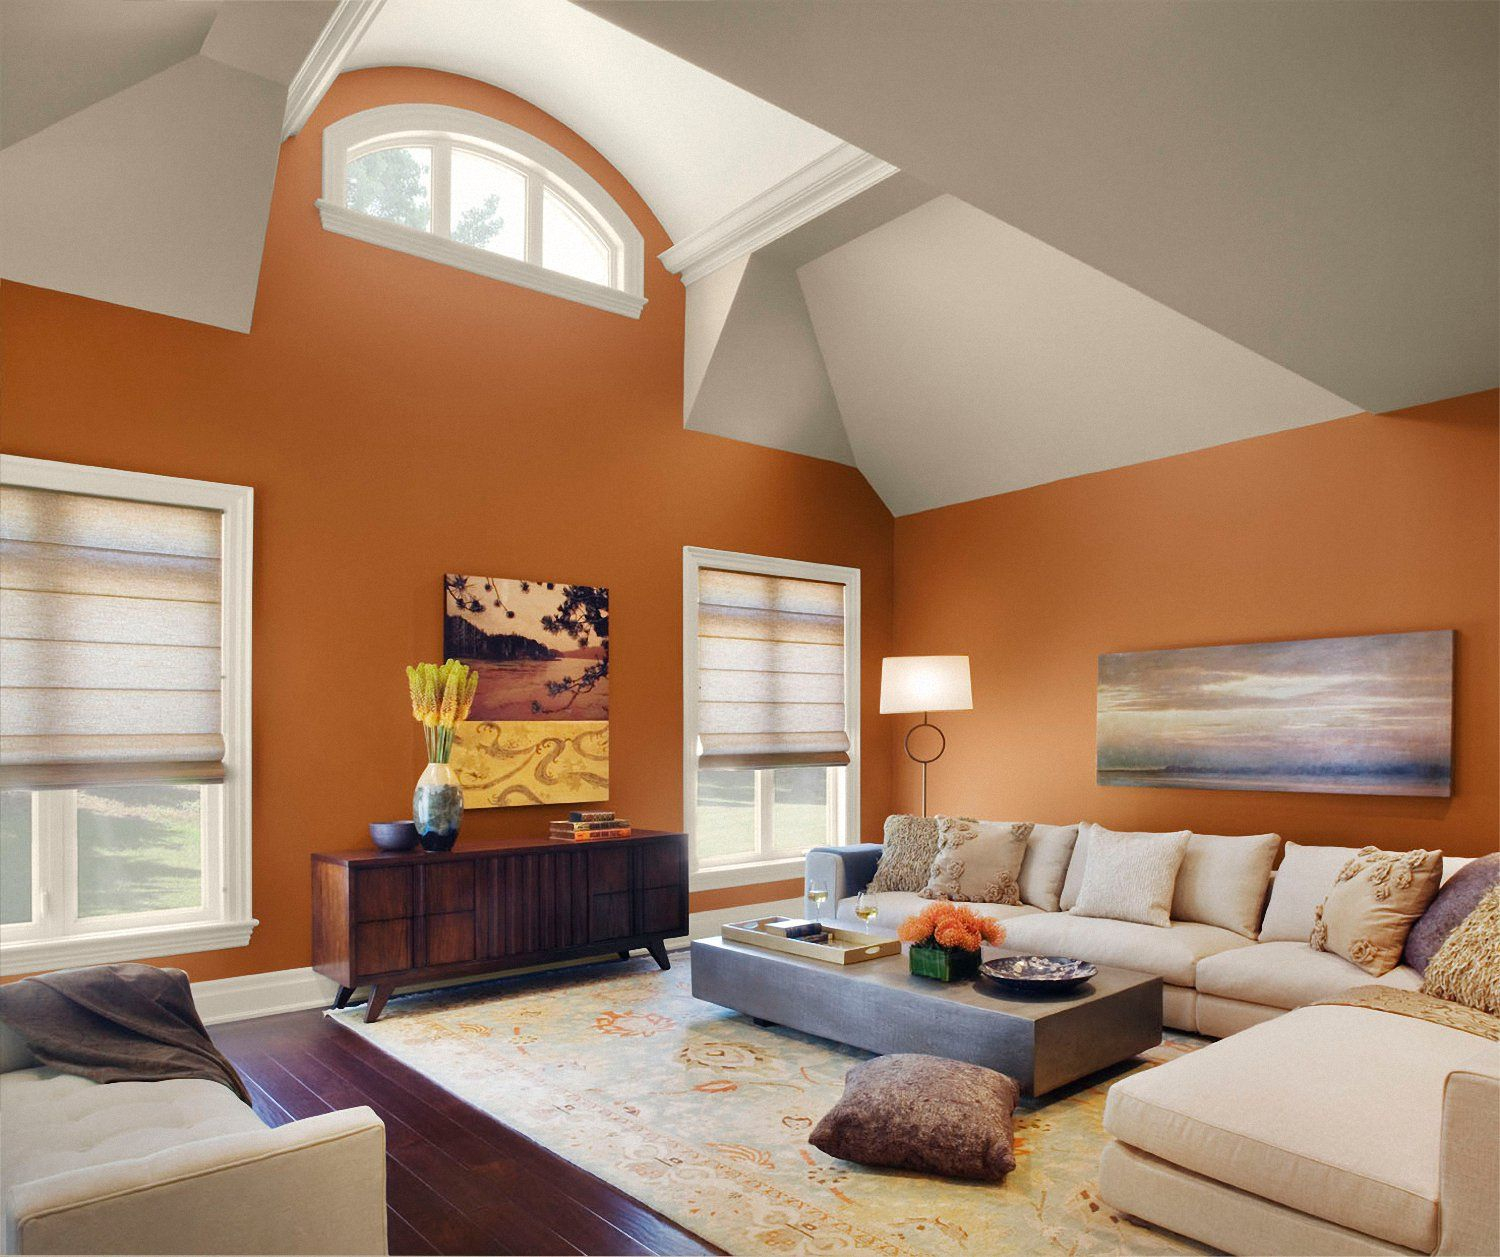 Trendy Living Room Paint Color Idea With Orange Painted Wall And